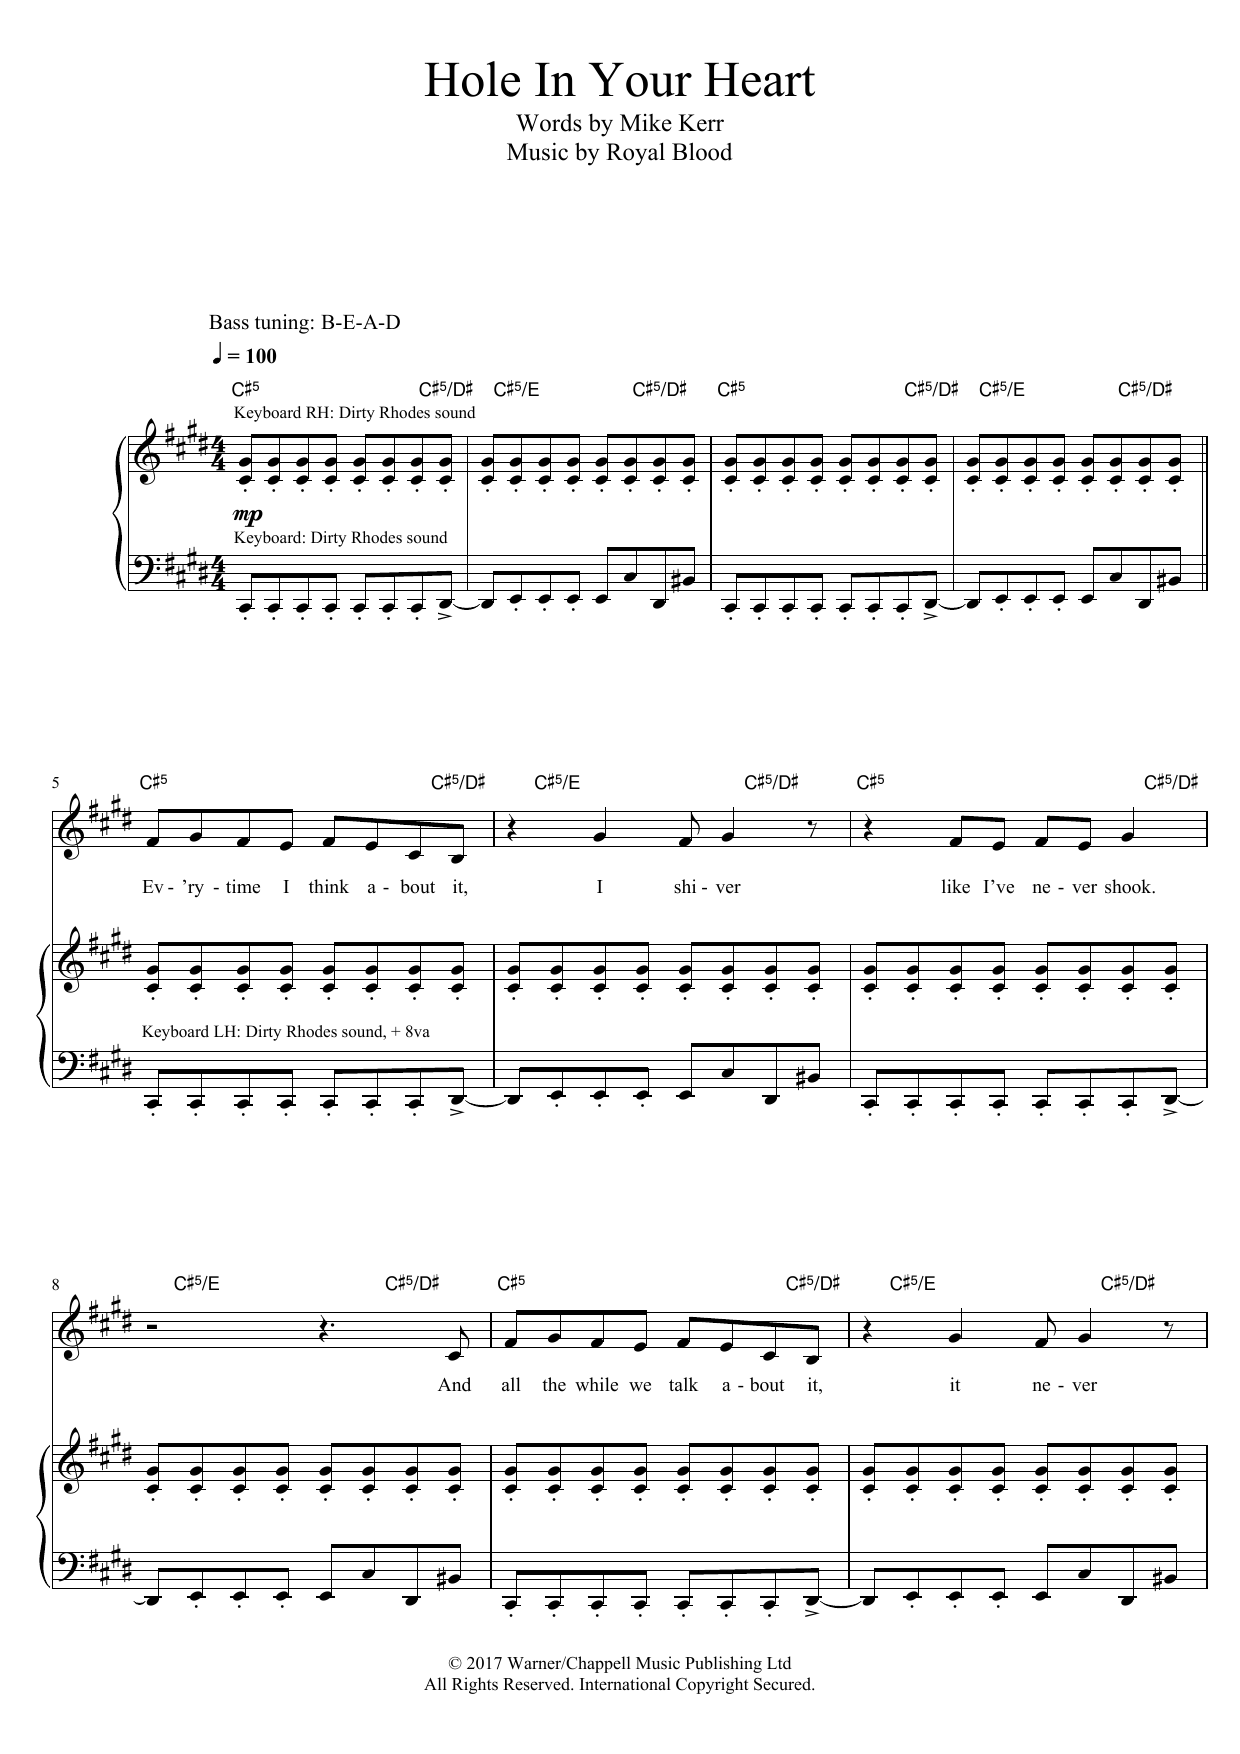 Hole In Your Heart Sheet Music